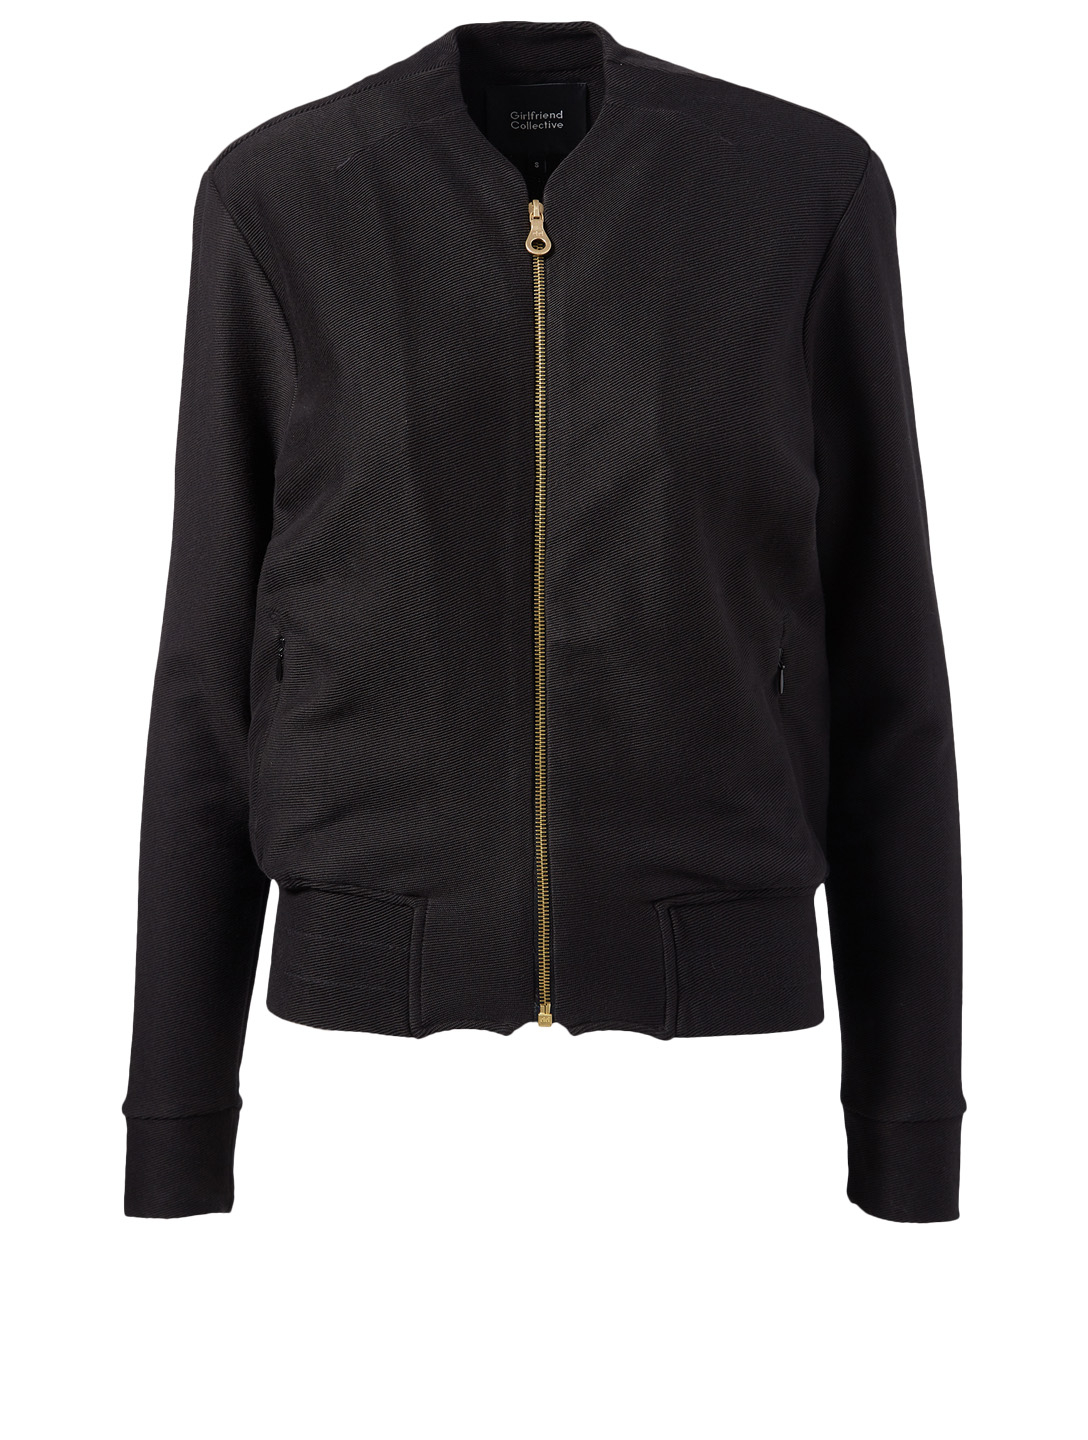 GIRLFRIEND COLLECTIVE Veste Lux en coton pima bio Projet H Noir